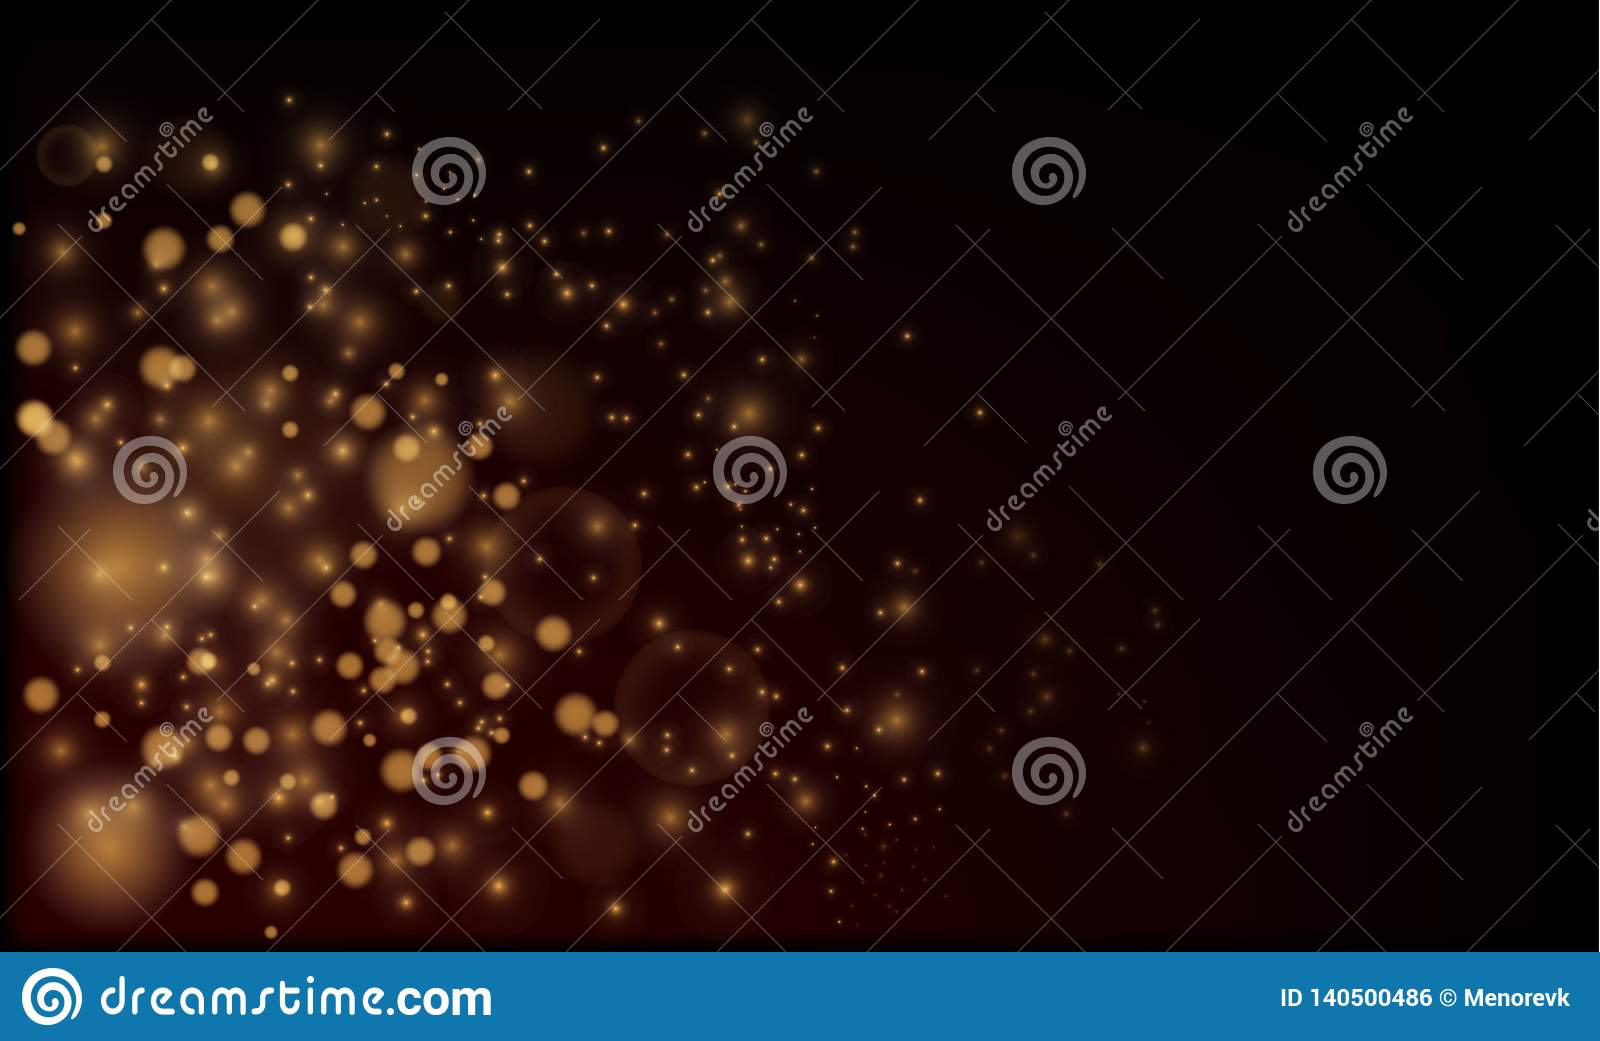 Texture background abstract black and white or silver Glitter and elegant